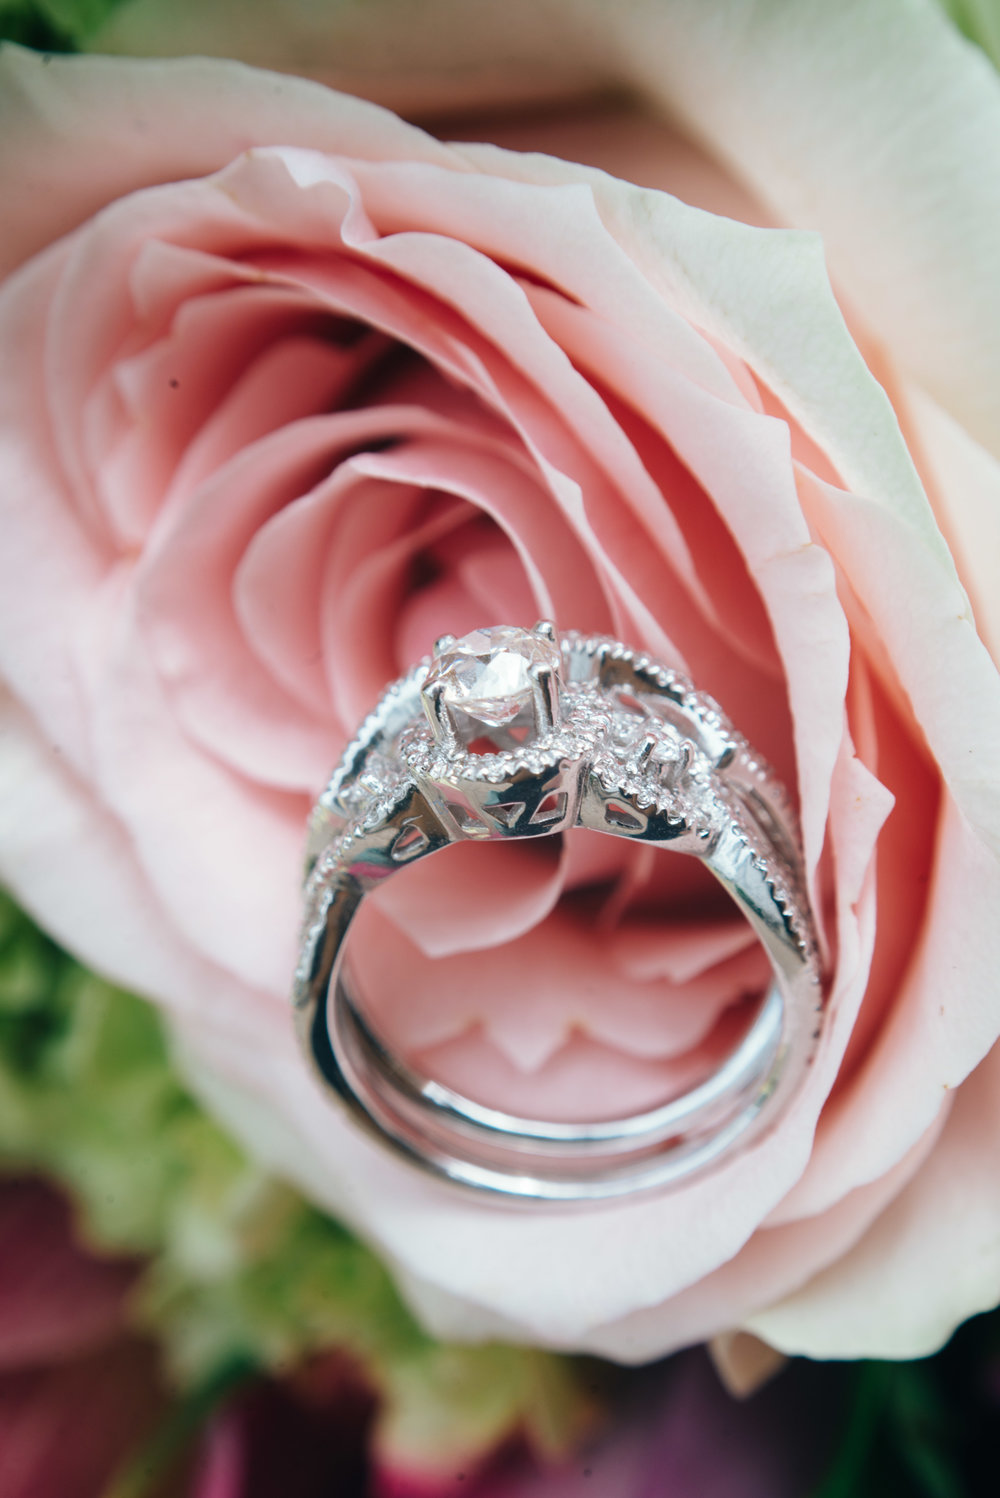 Close up shot macro photo of engagement and wedding rings nestled in a pink rose.